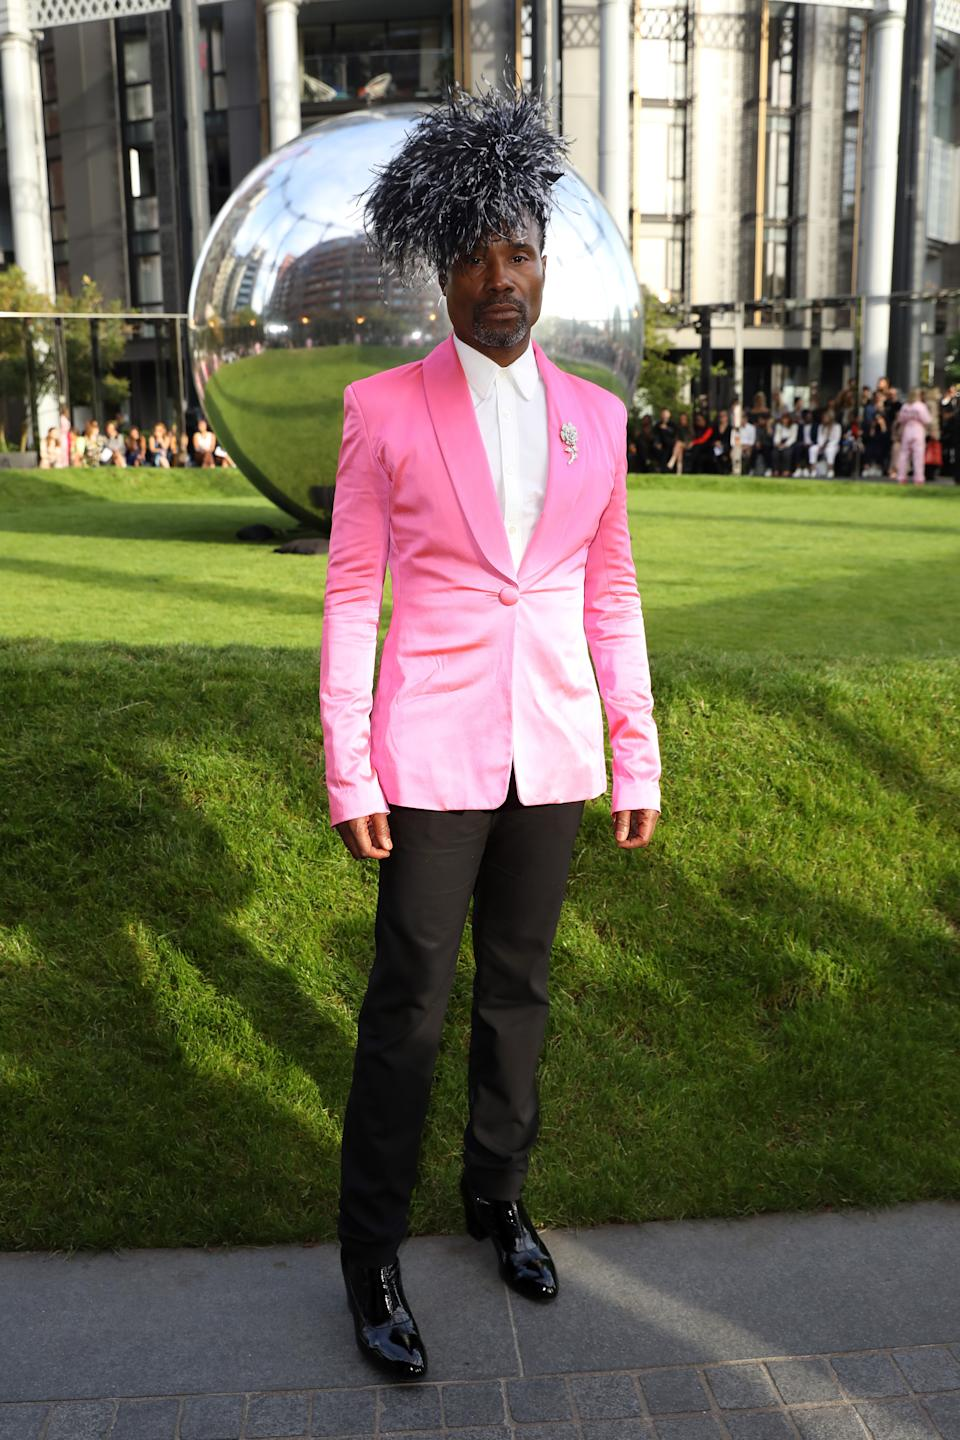 Billy Porter attends the House of Holland wearing a pink tuxedo jacket, black trousers and a monochrome fascinator [Photo: Getty Images]